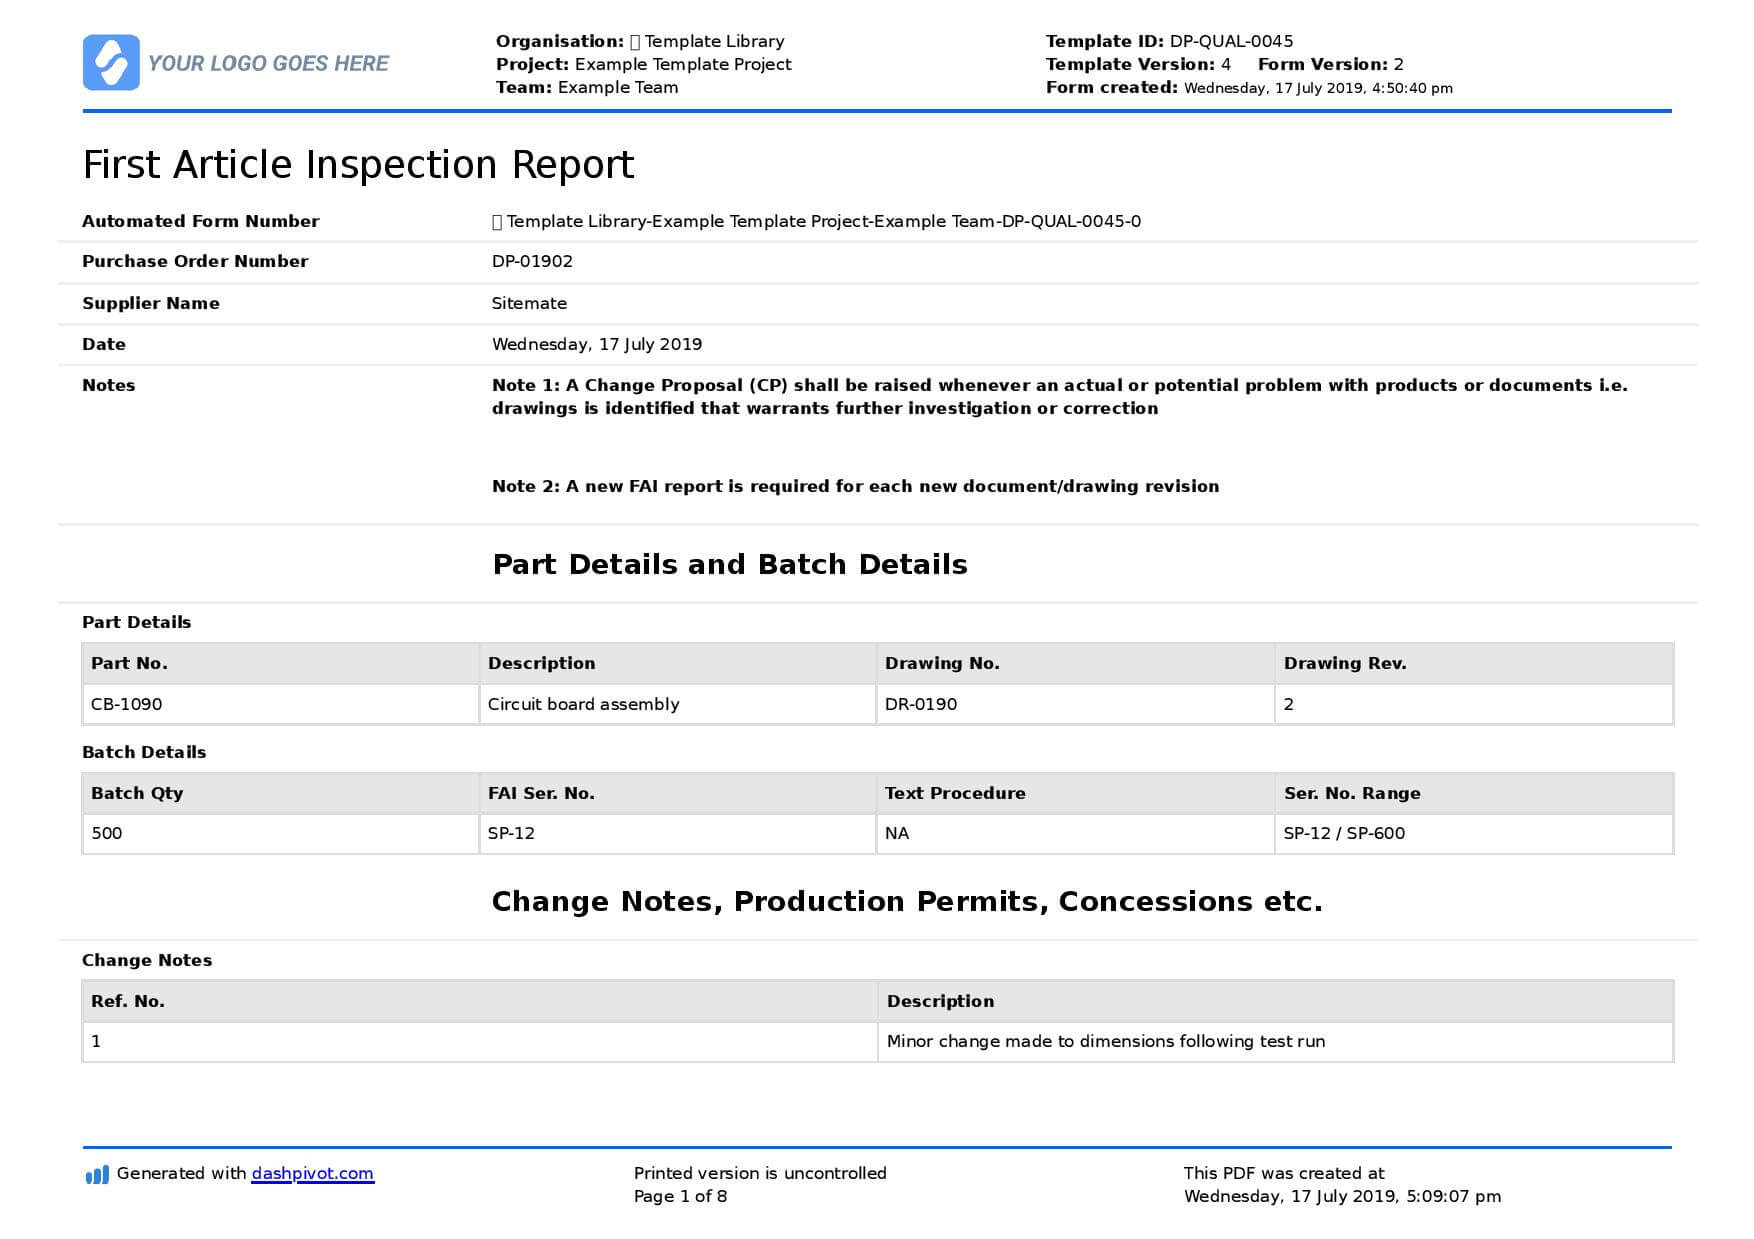 First Article Inspection Form Template: Free & Editable pertaining to Engineering Inspection Report Template